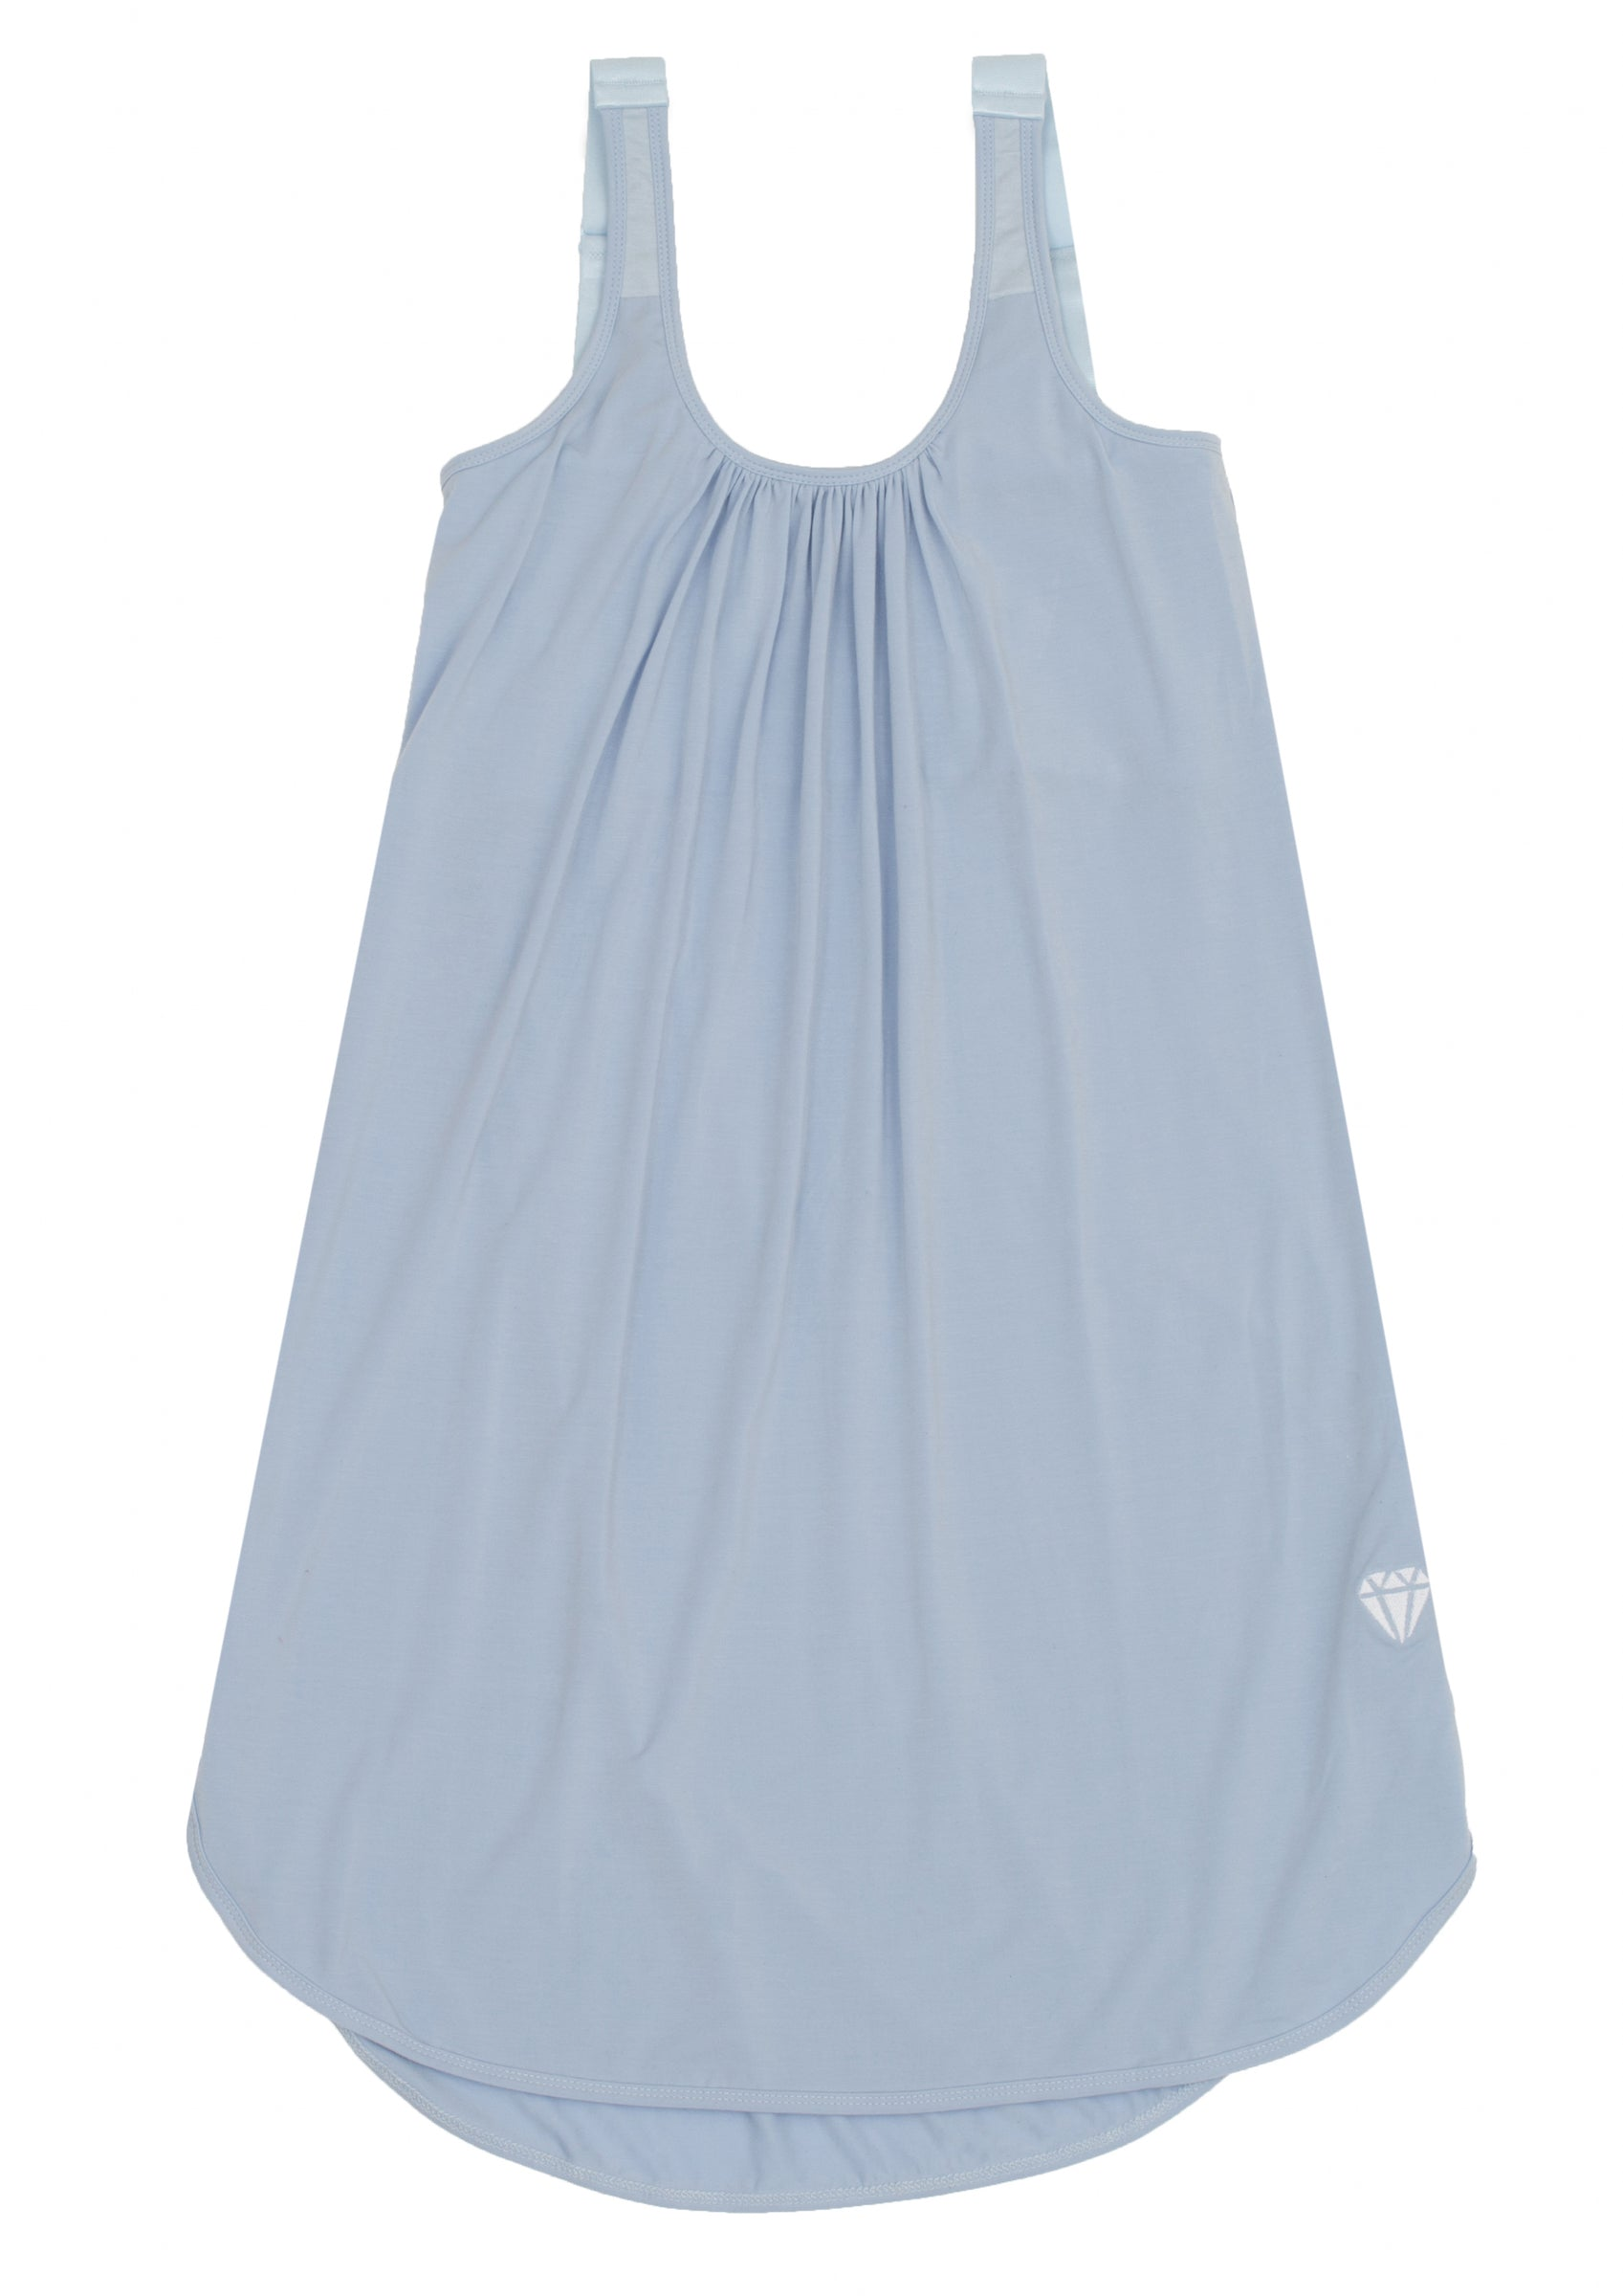 Private Holdings baby blue nightgown